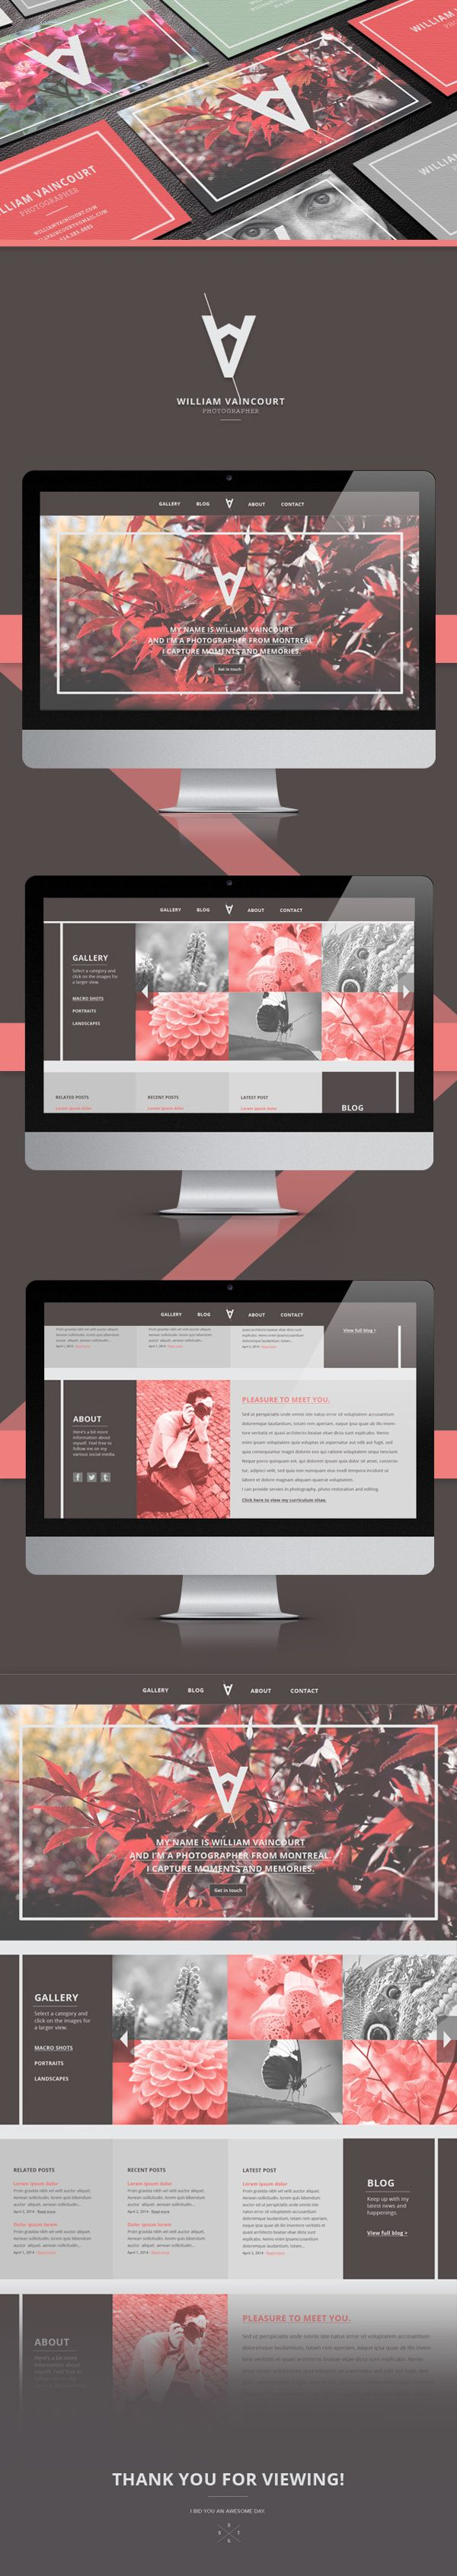 William-Vaincourt-Photographer-(Fictional) { Way to present web design } personal #branding and #identity